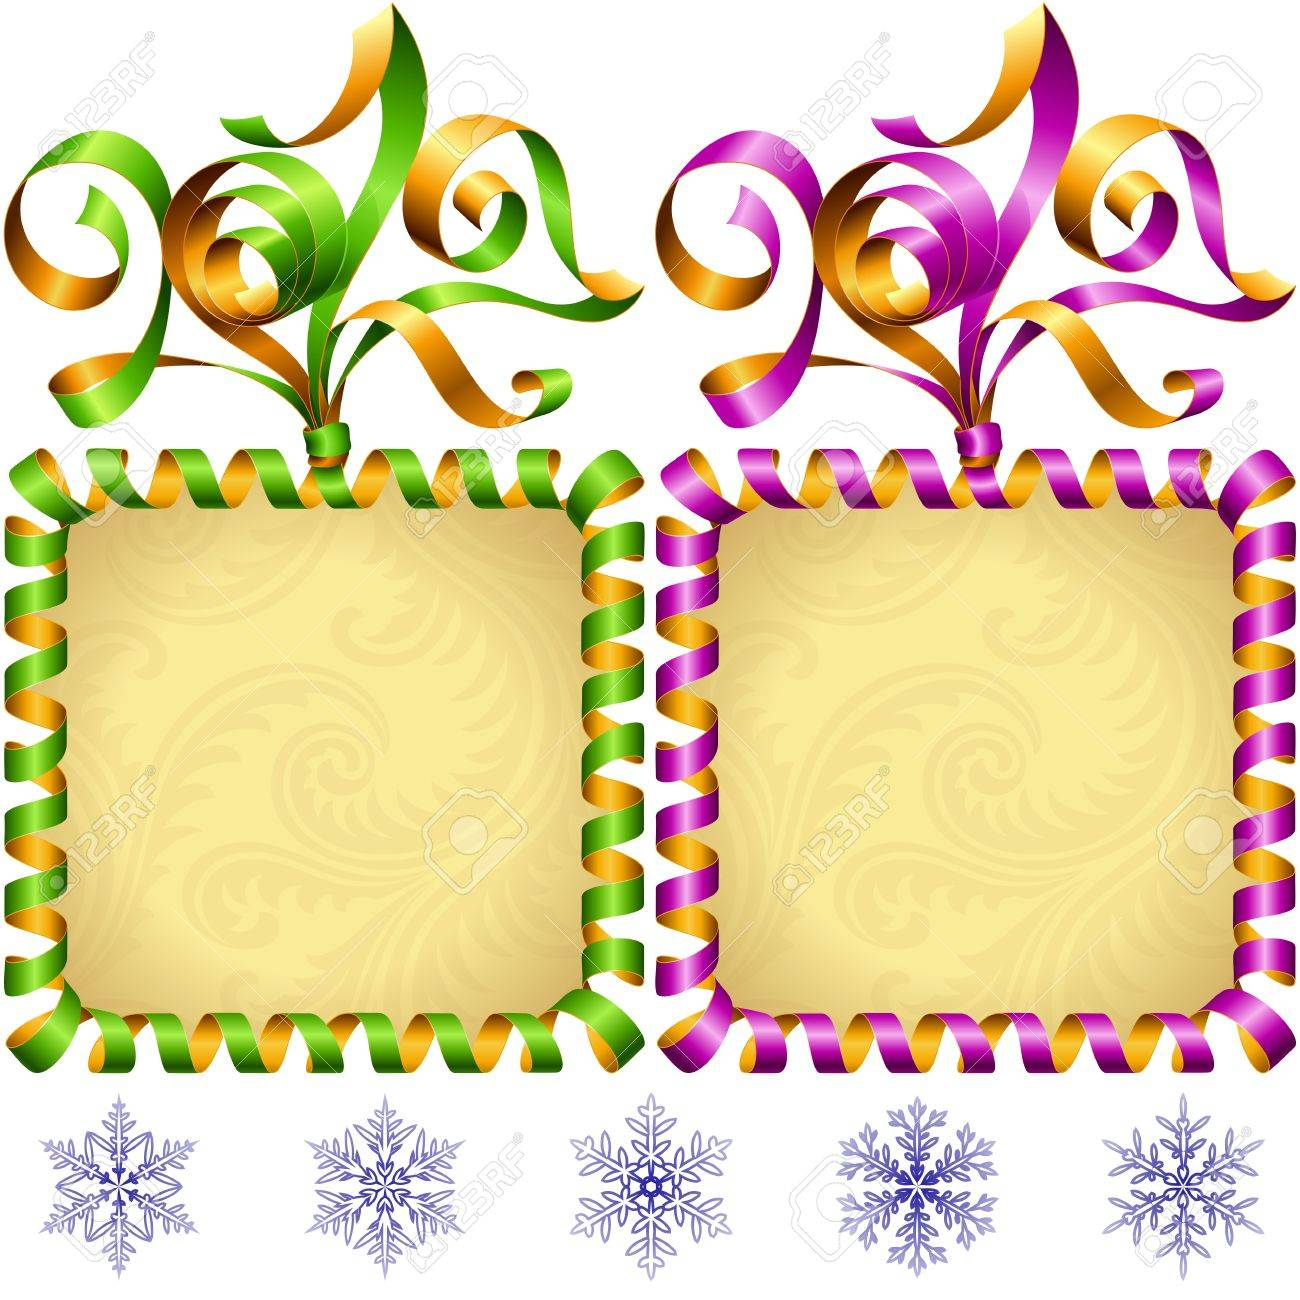 new year 2017 square frame set green and purple streamer stock vector 68100511